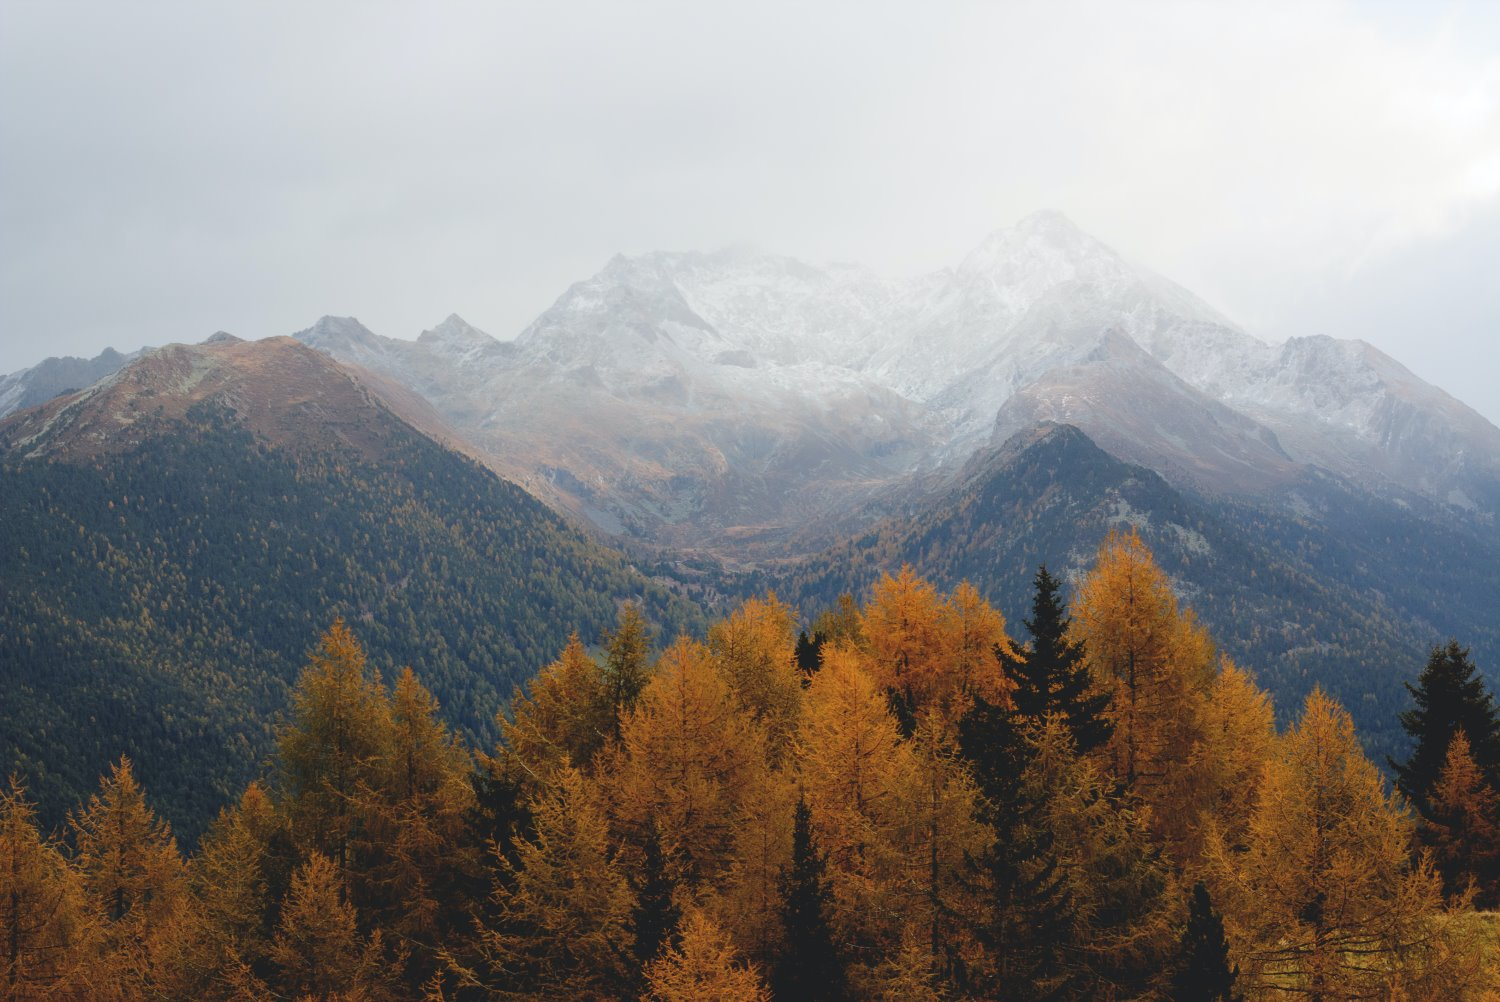 autumn trees with mountains in the background